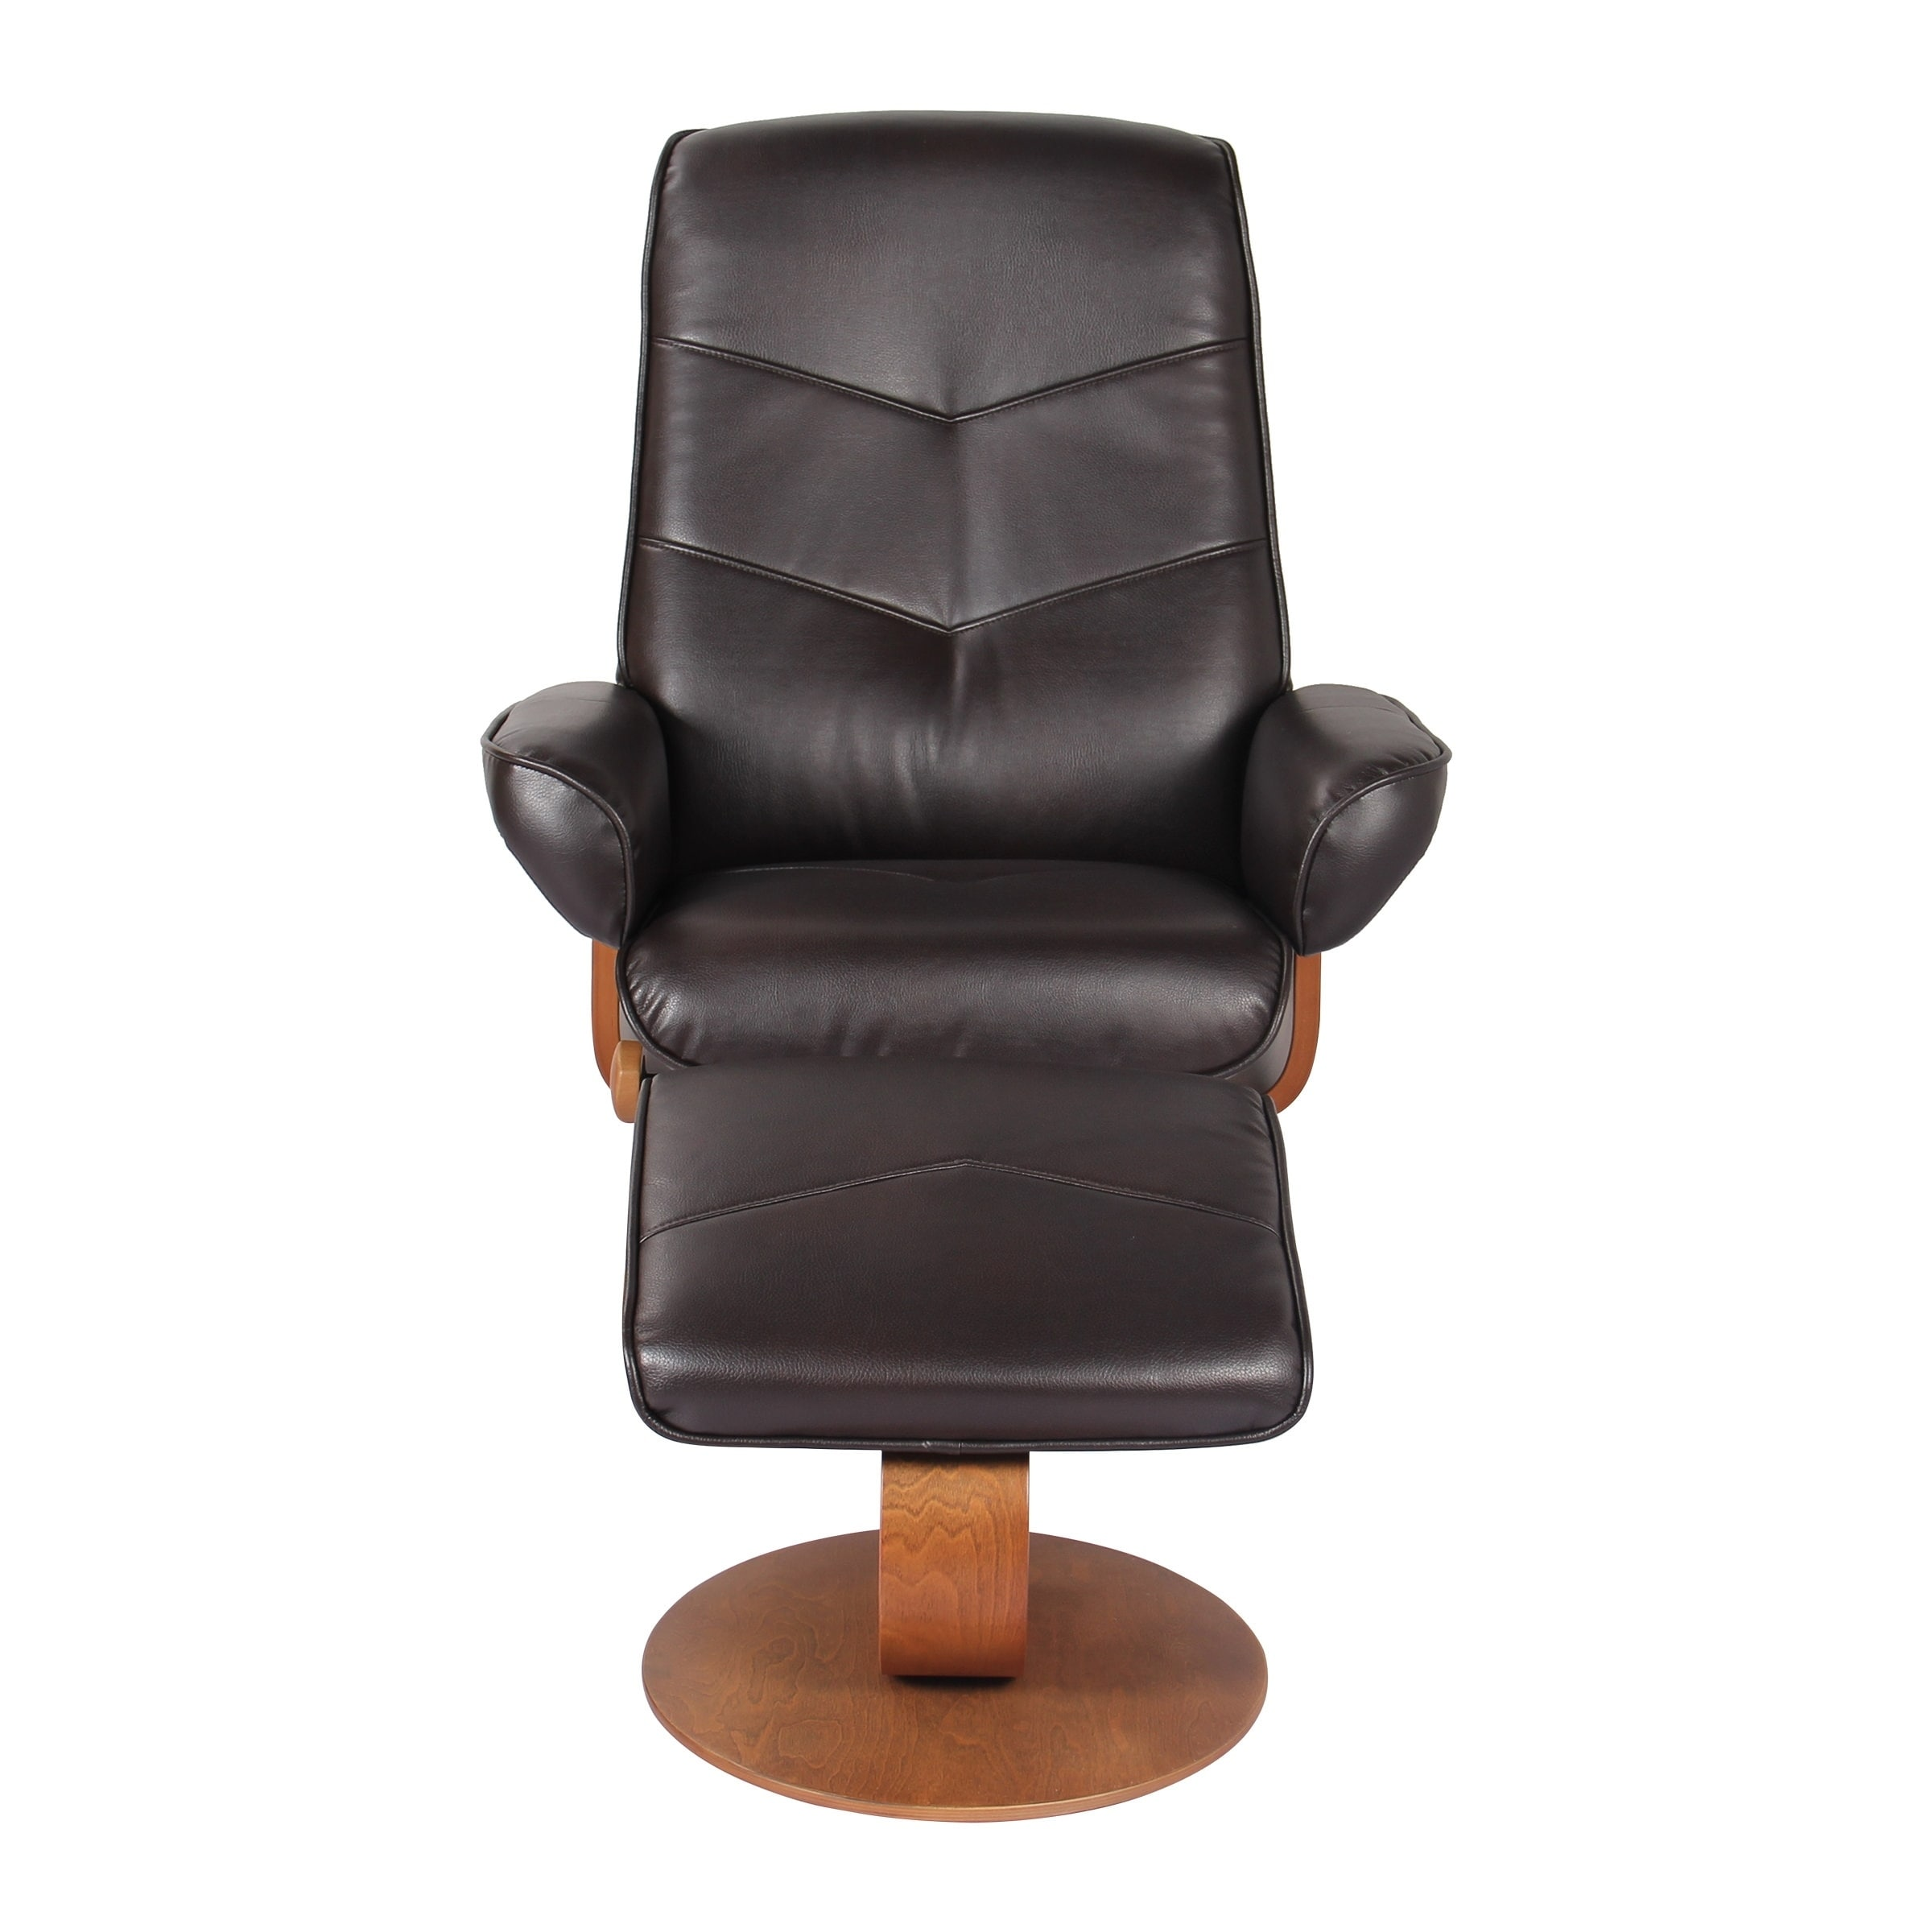 reclining chair with ottoman leather how to recane a shop newridge home swivel recliner in java verona on sale free shipping today overstock com 21609667